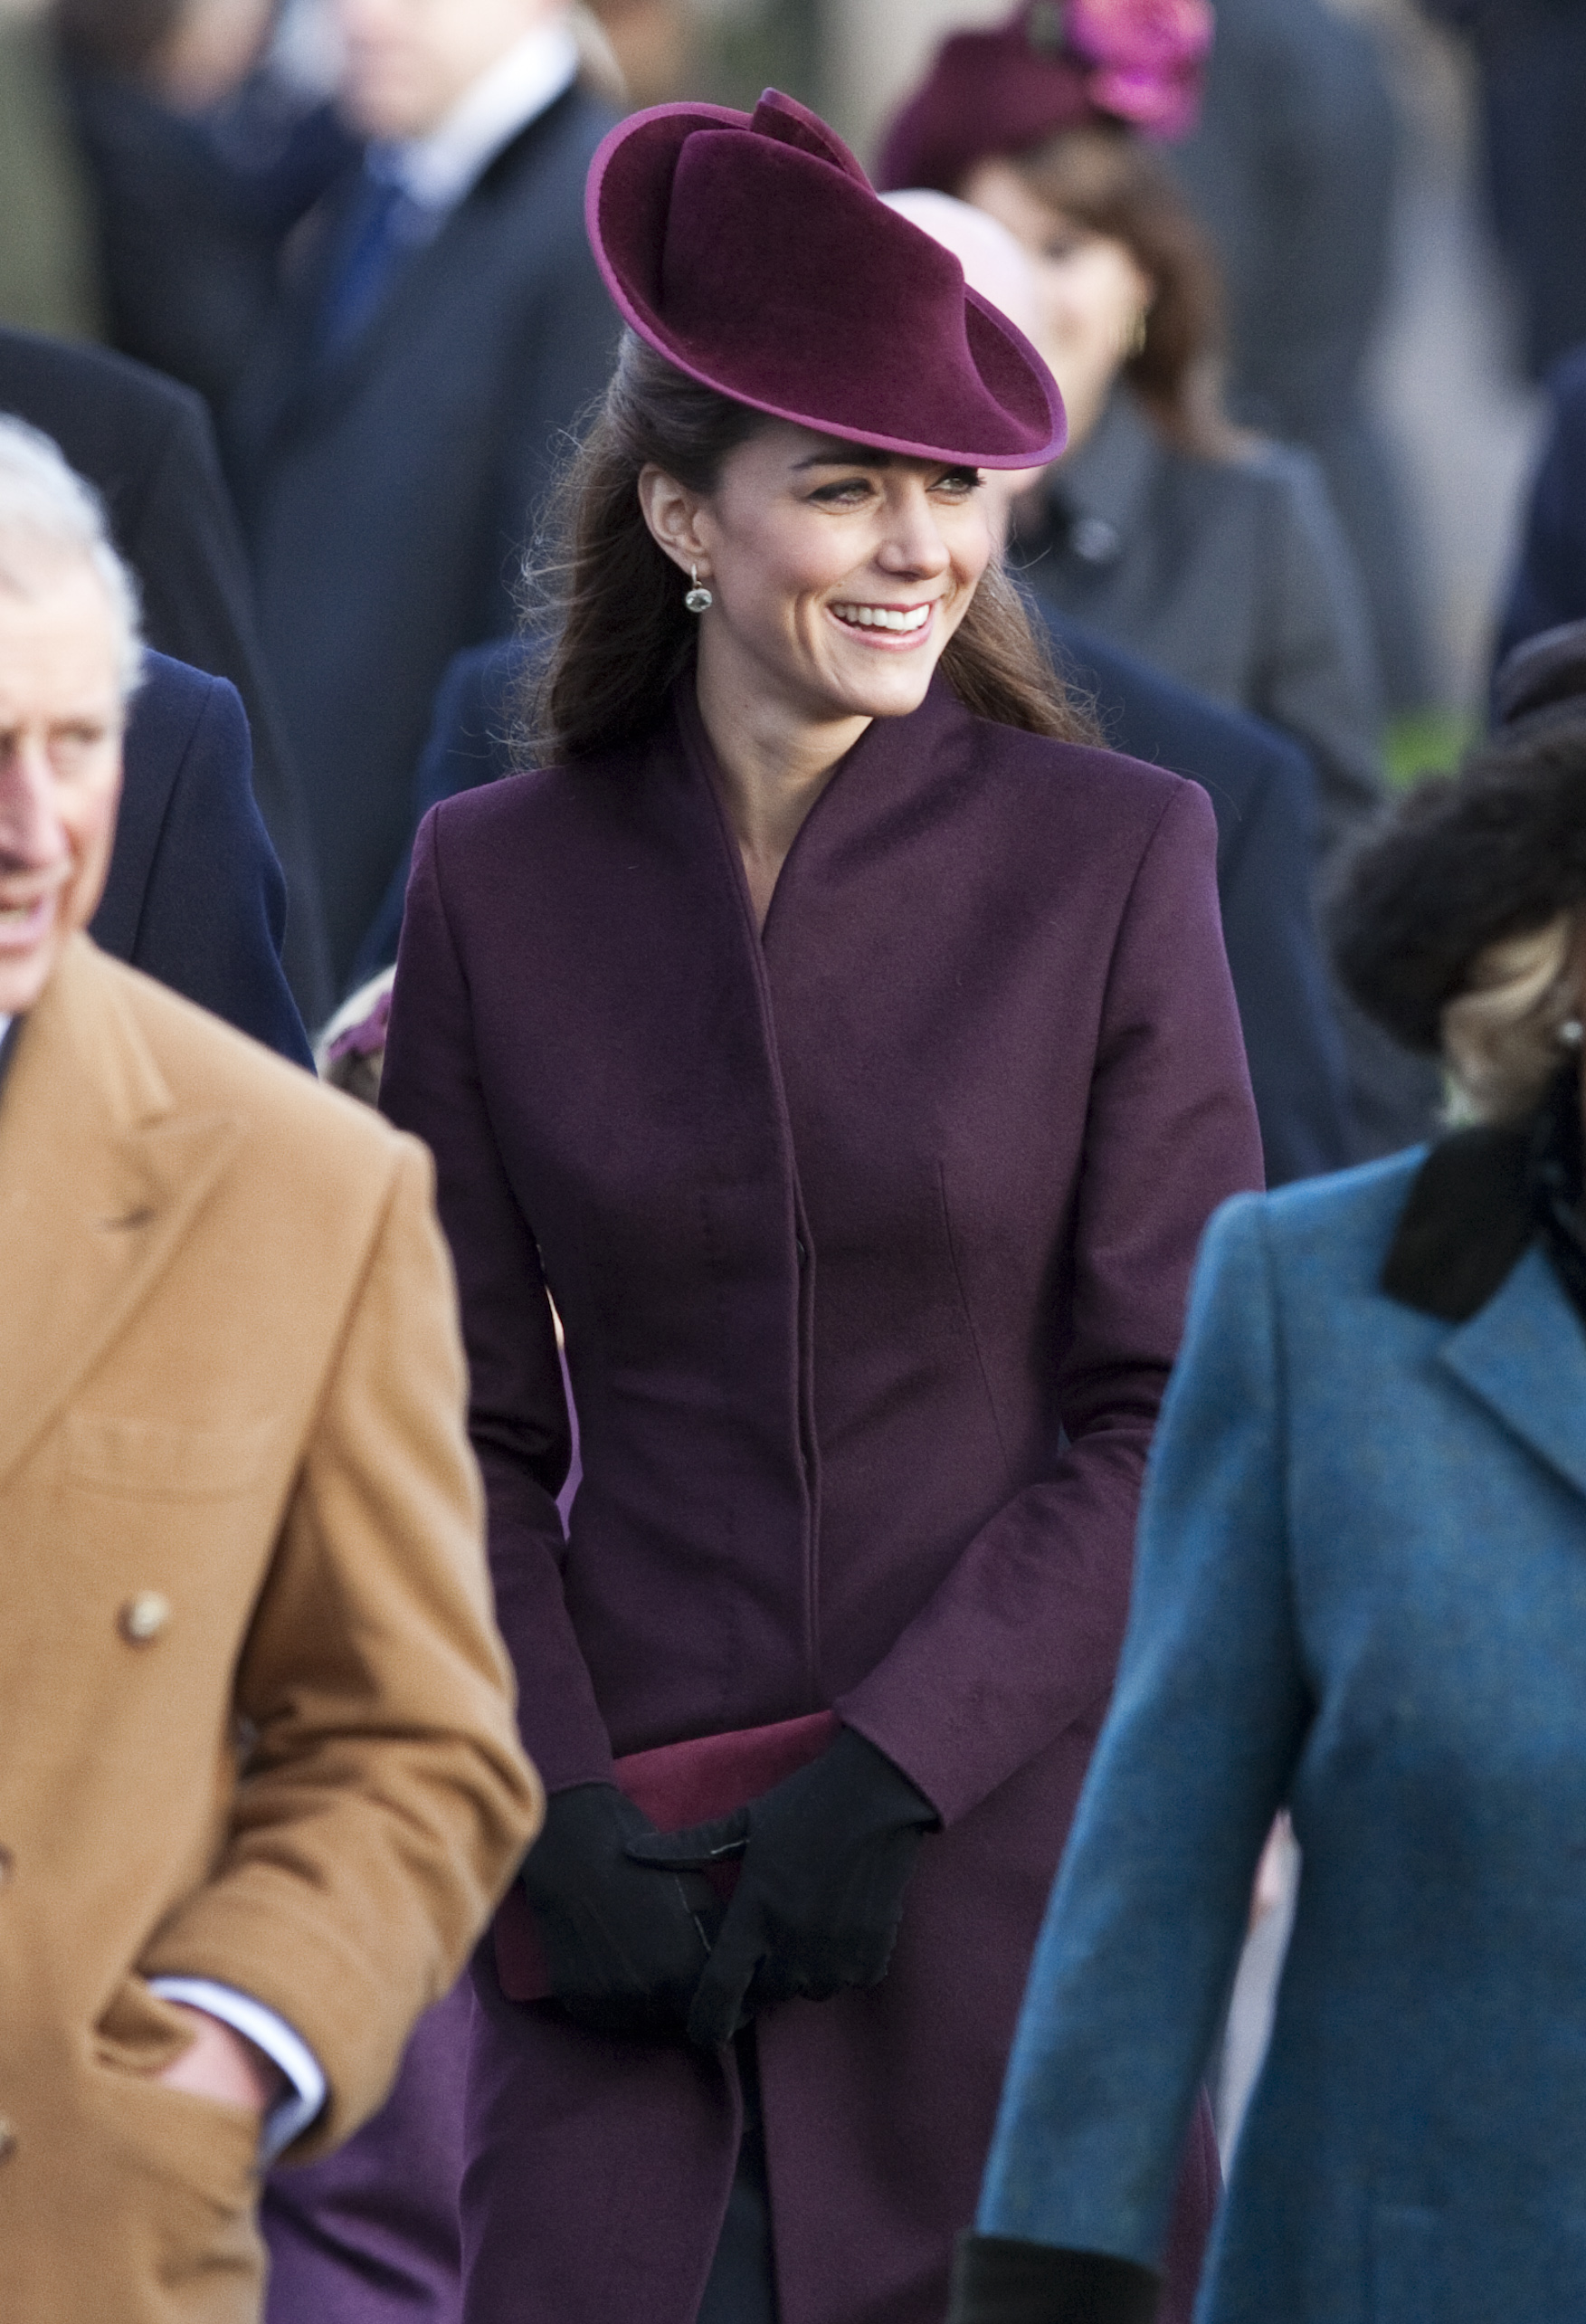 <strong>A Royal Christmas</strong>                                   The Duchess celebrated her first Christmas as a royal family member in an aubergine coat and hat by British designer Jane Corbett.